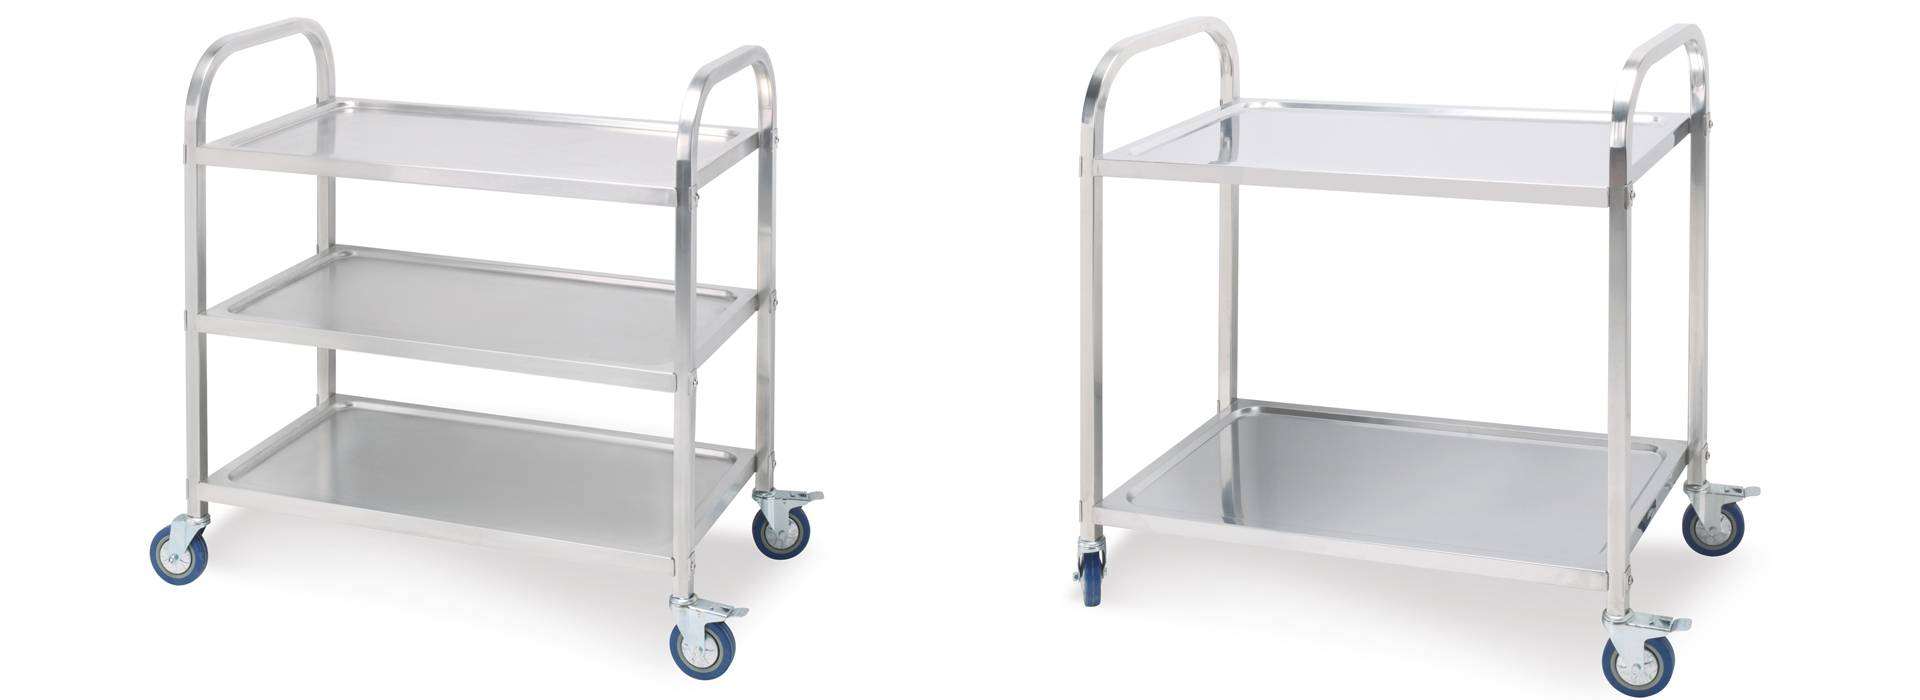 201ss stainless steel three layers dining cart